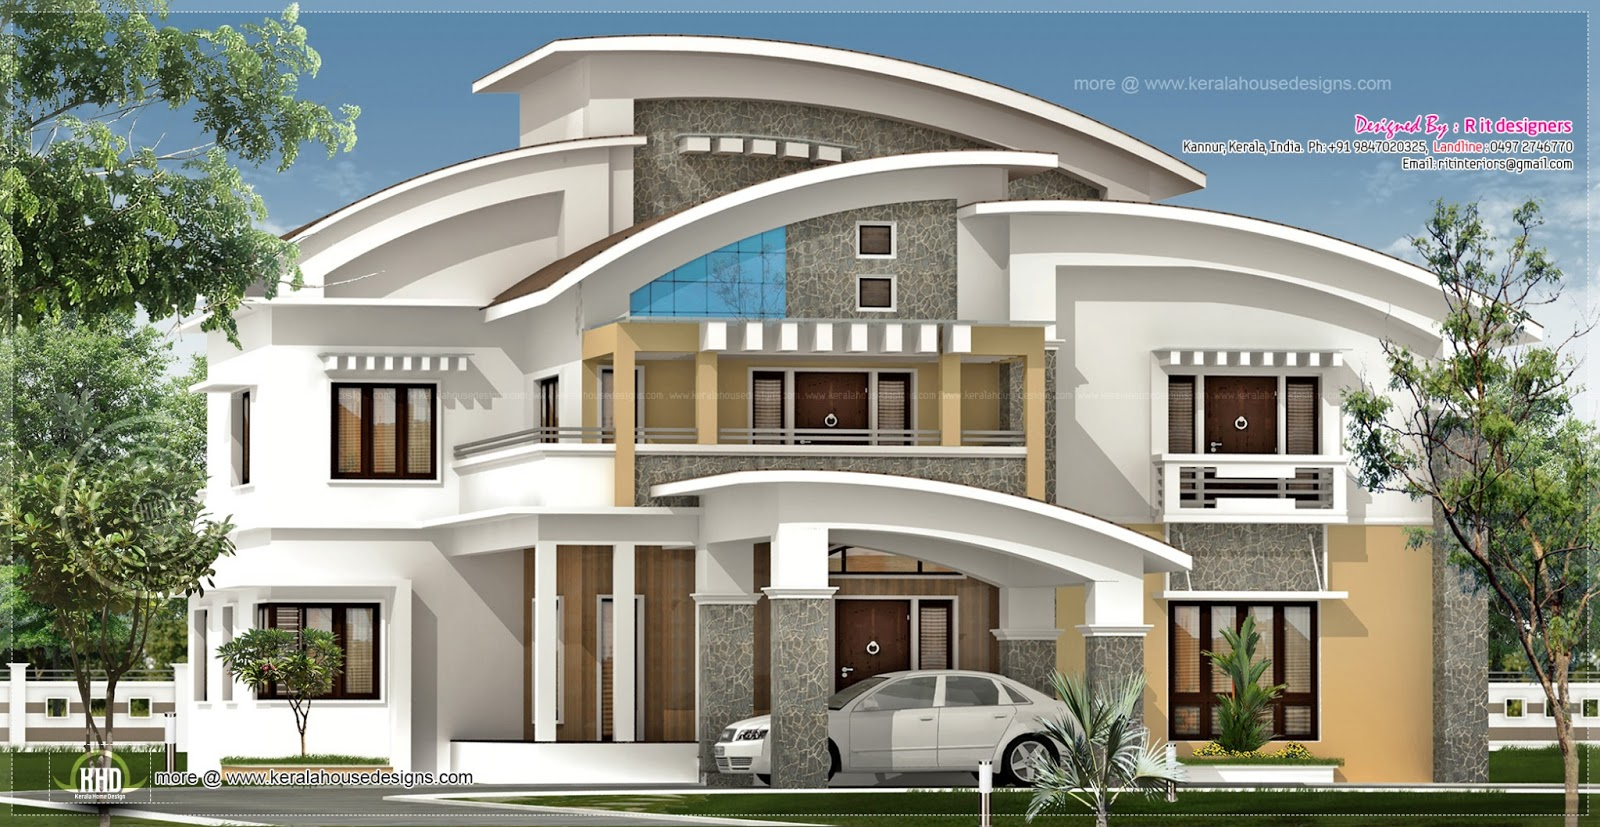 Small luxury house plans luxury house plans and designs for Small house plans and designs